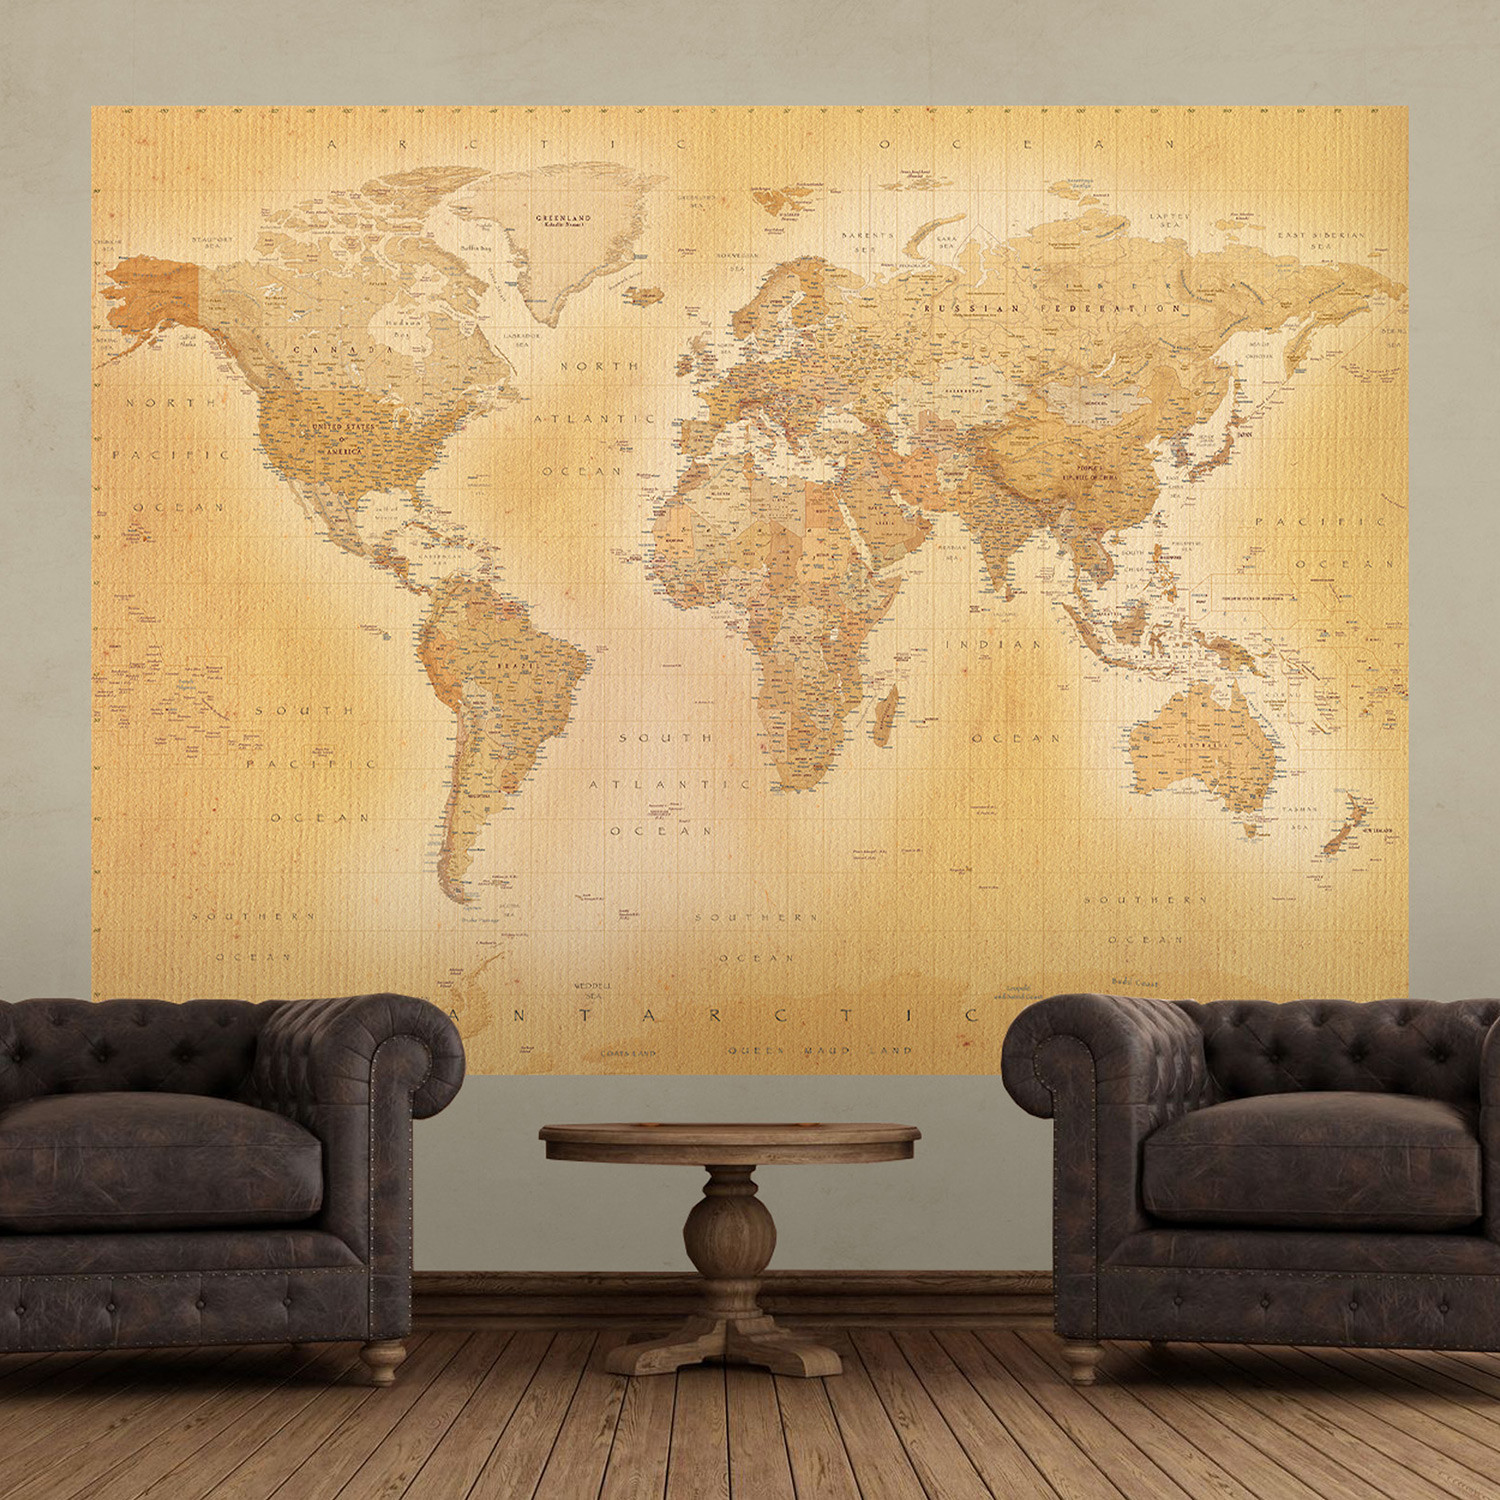 Vintage style old map wall mural 1 wall murals touch of modern vintage style old map wall mural amipublicfo Gallery